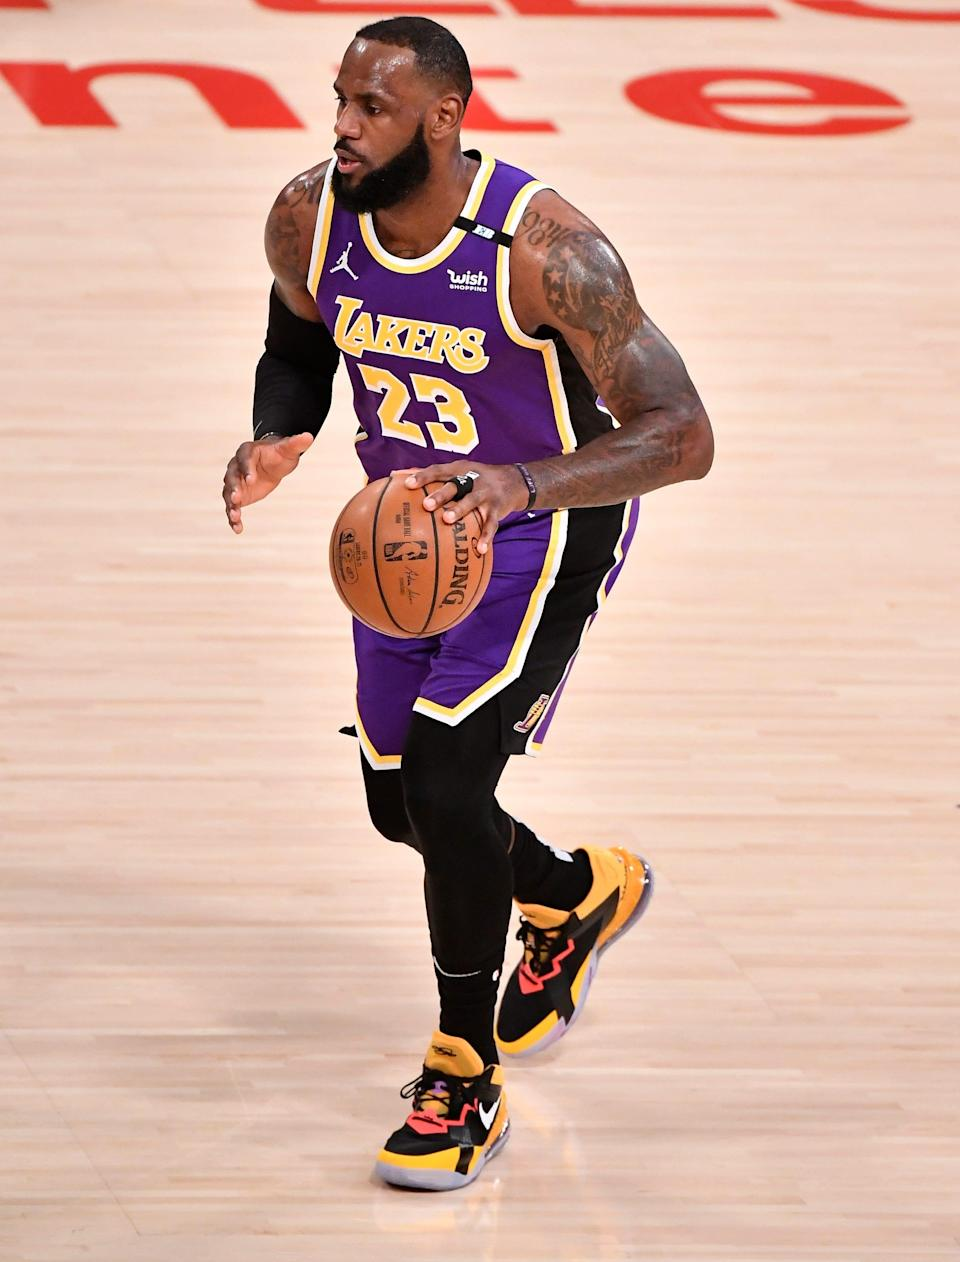 LeBron James was considered an MVP favorite until a high ankle sprain forced him to miss 20 consecutive games.